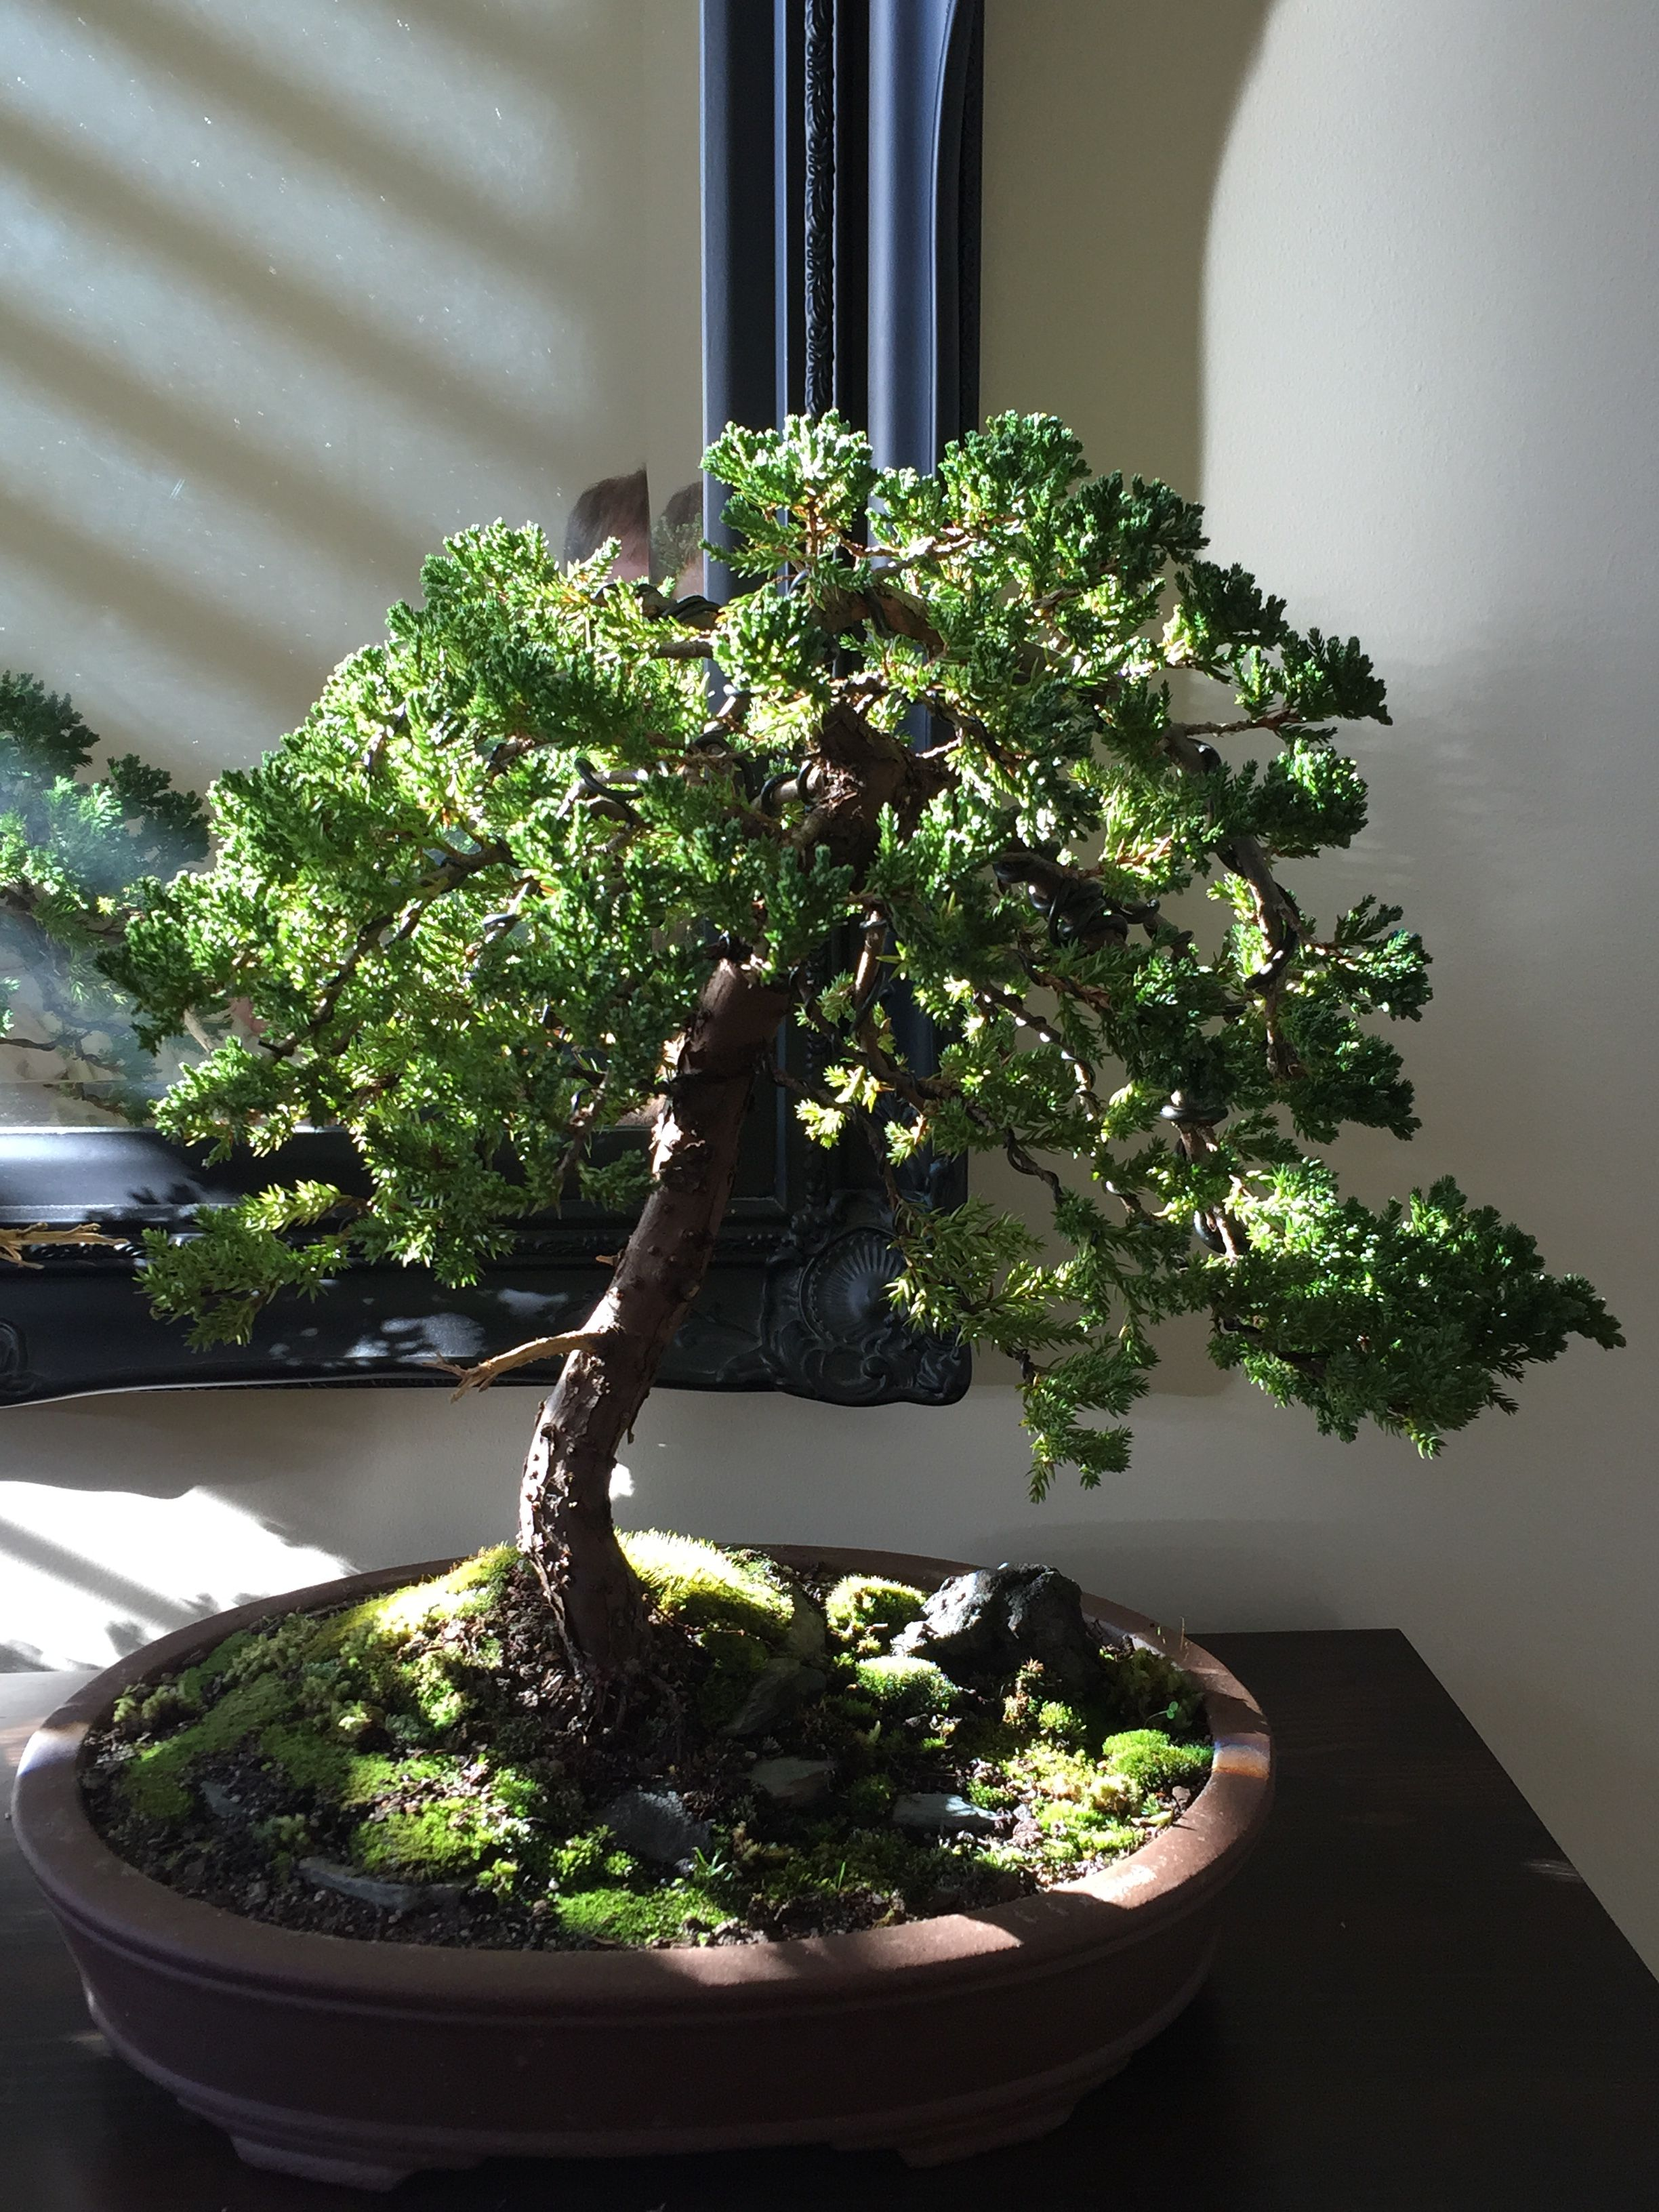 my bonsai juniper 2 after wiring potting and landscaping 24 06 16 rh pinterest com Bonsai Wiring Tips Bonsai Wire Sizes